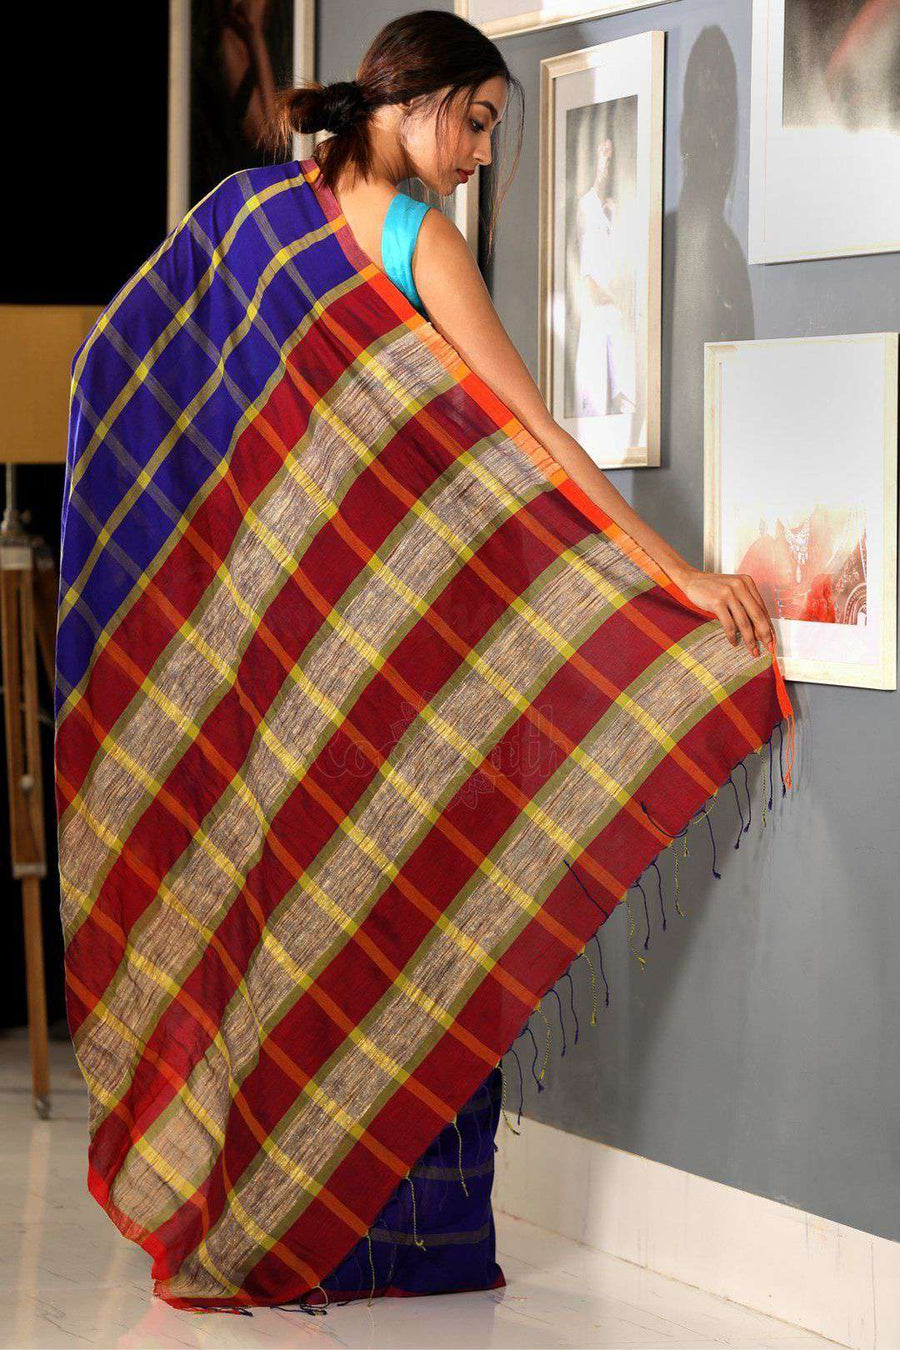 Berry Blue Checkered Cotton Saree Cotton Threads Of India Roopkatha - A Story of Art